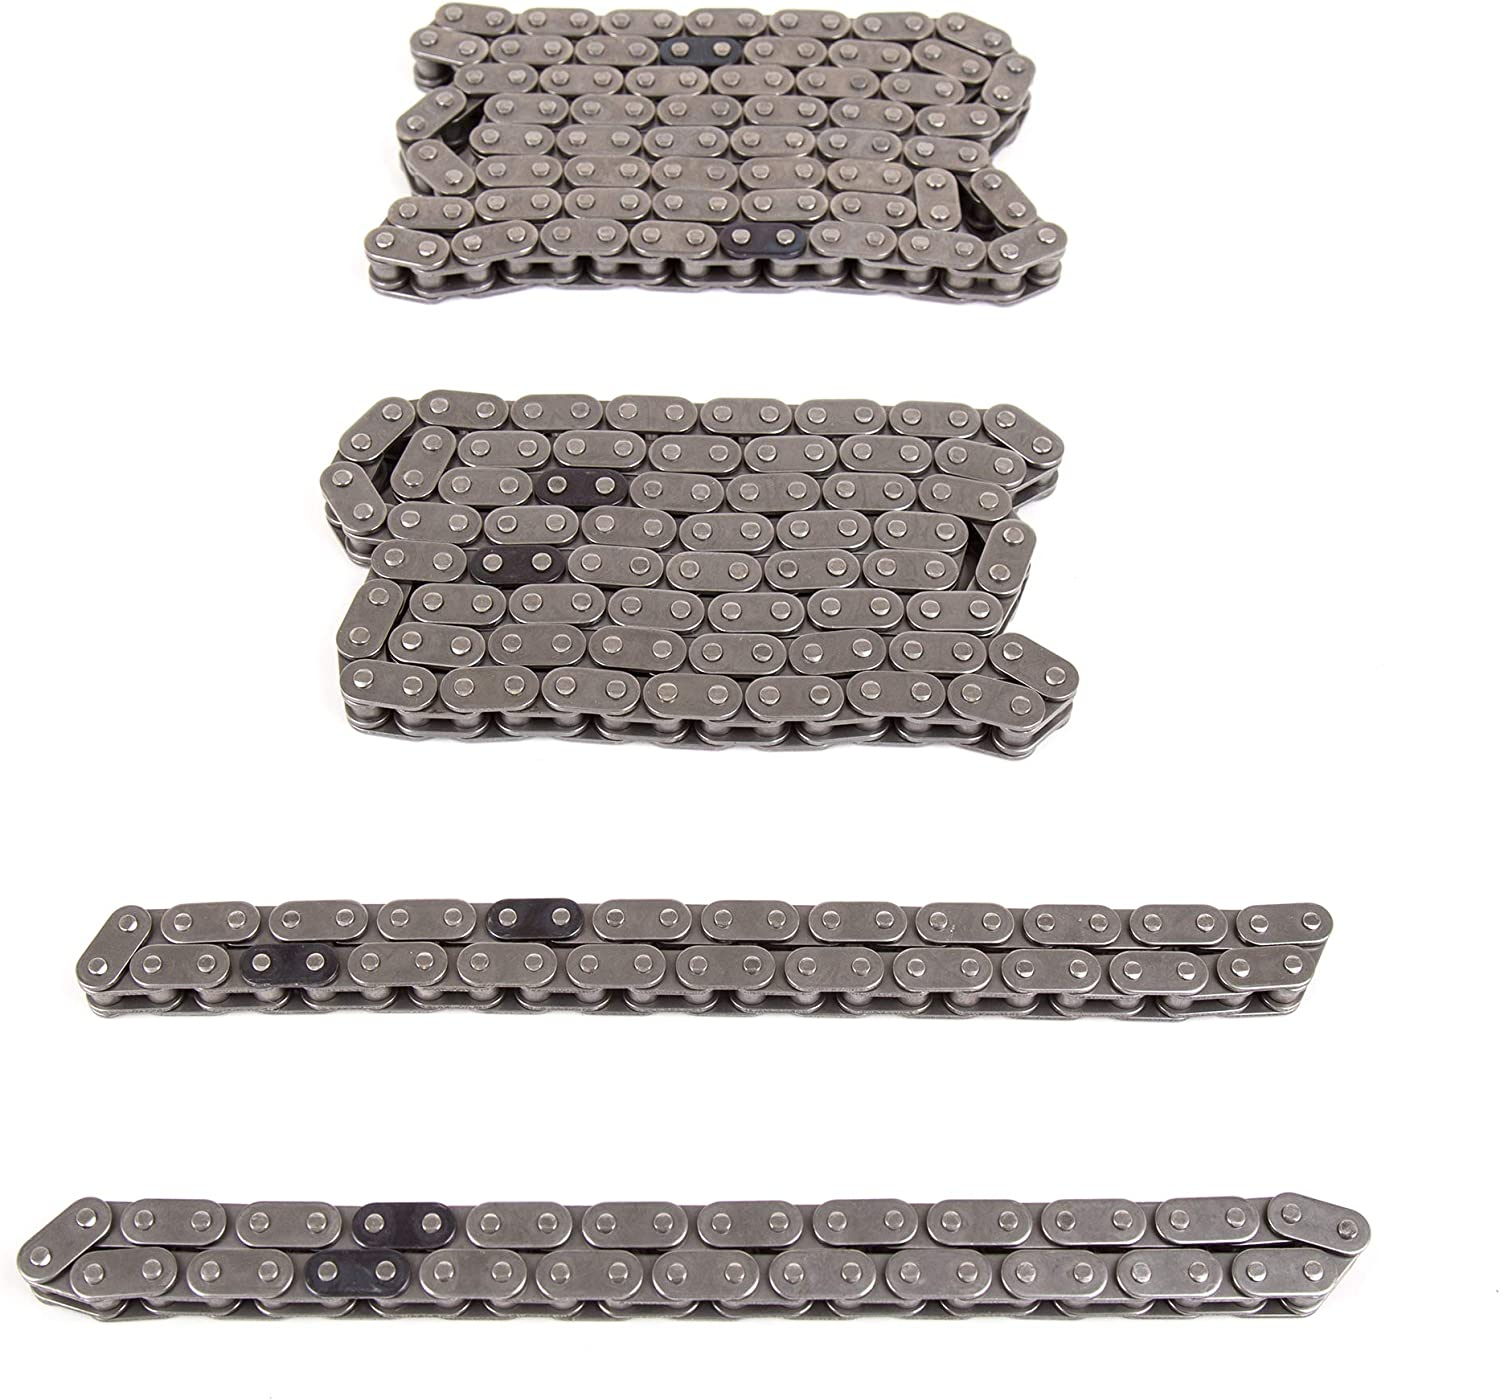 Evergreen TK2056L Timing Chain Kit Fit 09-17 Lexus LX570 Toyota Land Cruiser Sequoia Tundra 3URFE Evergreen Parts and Accessories